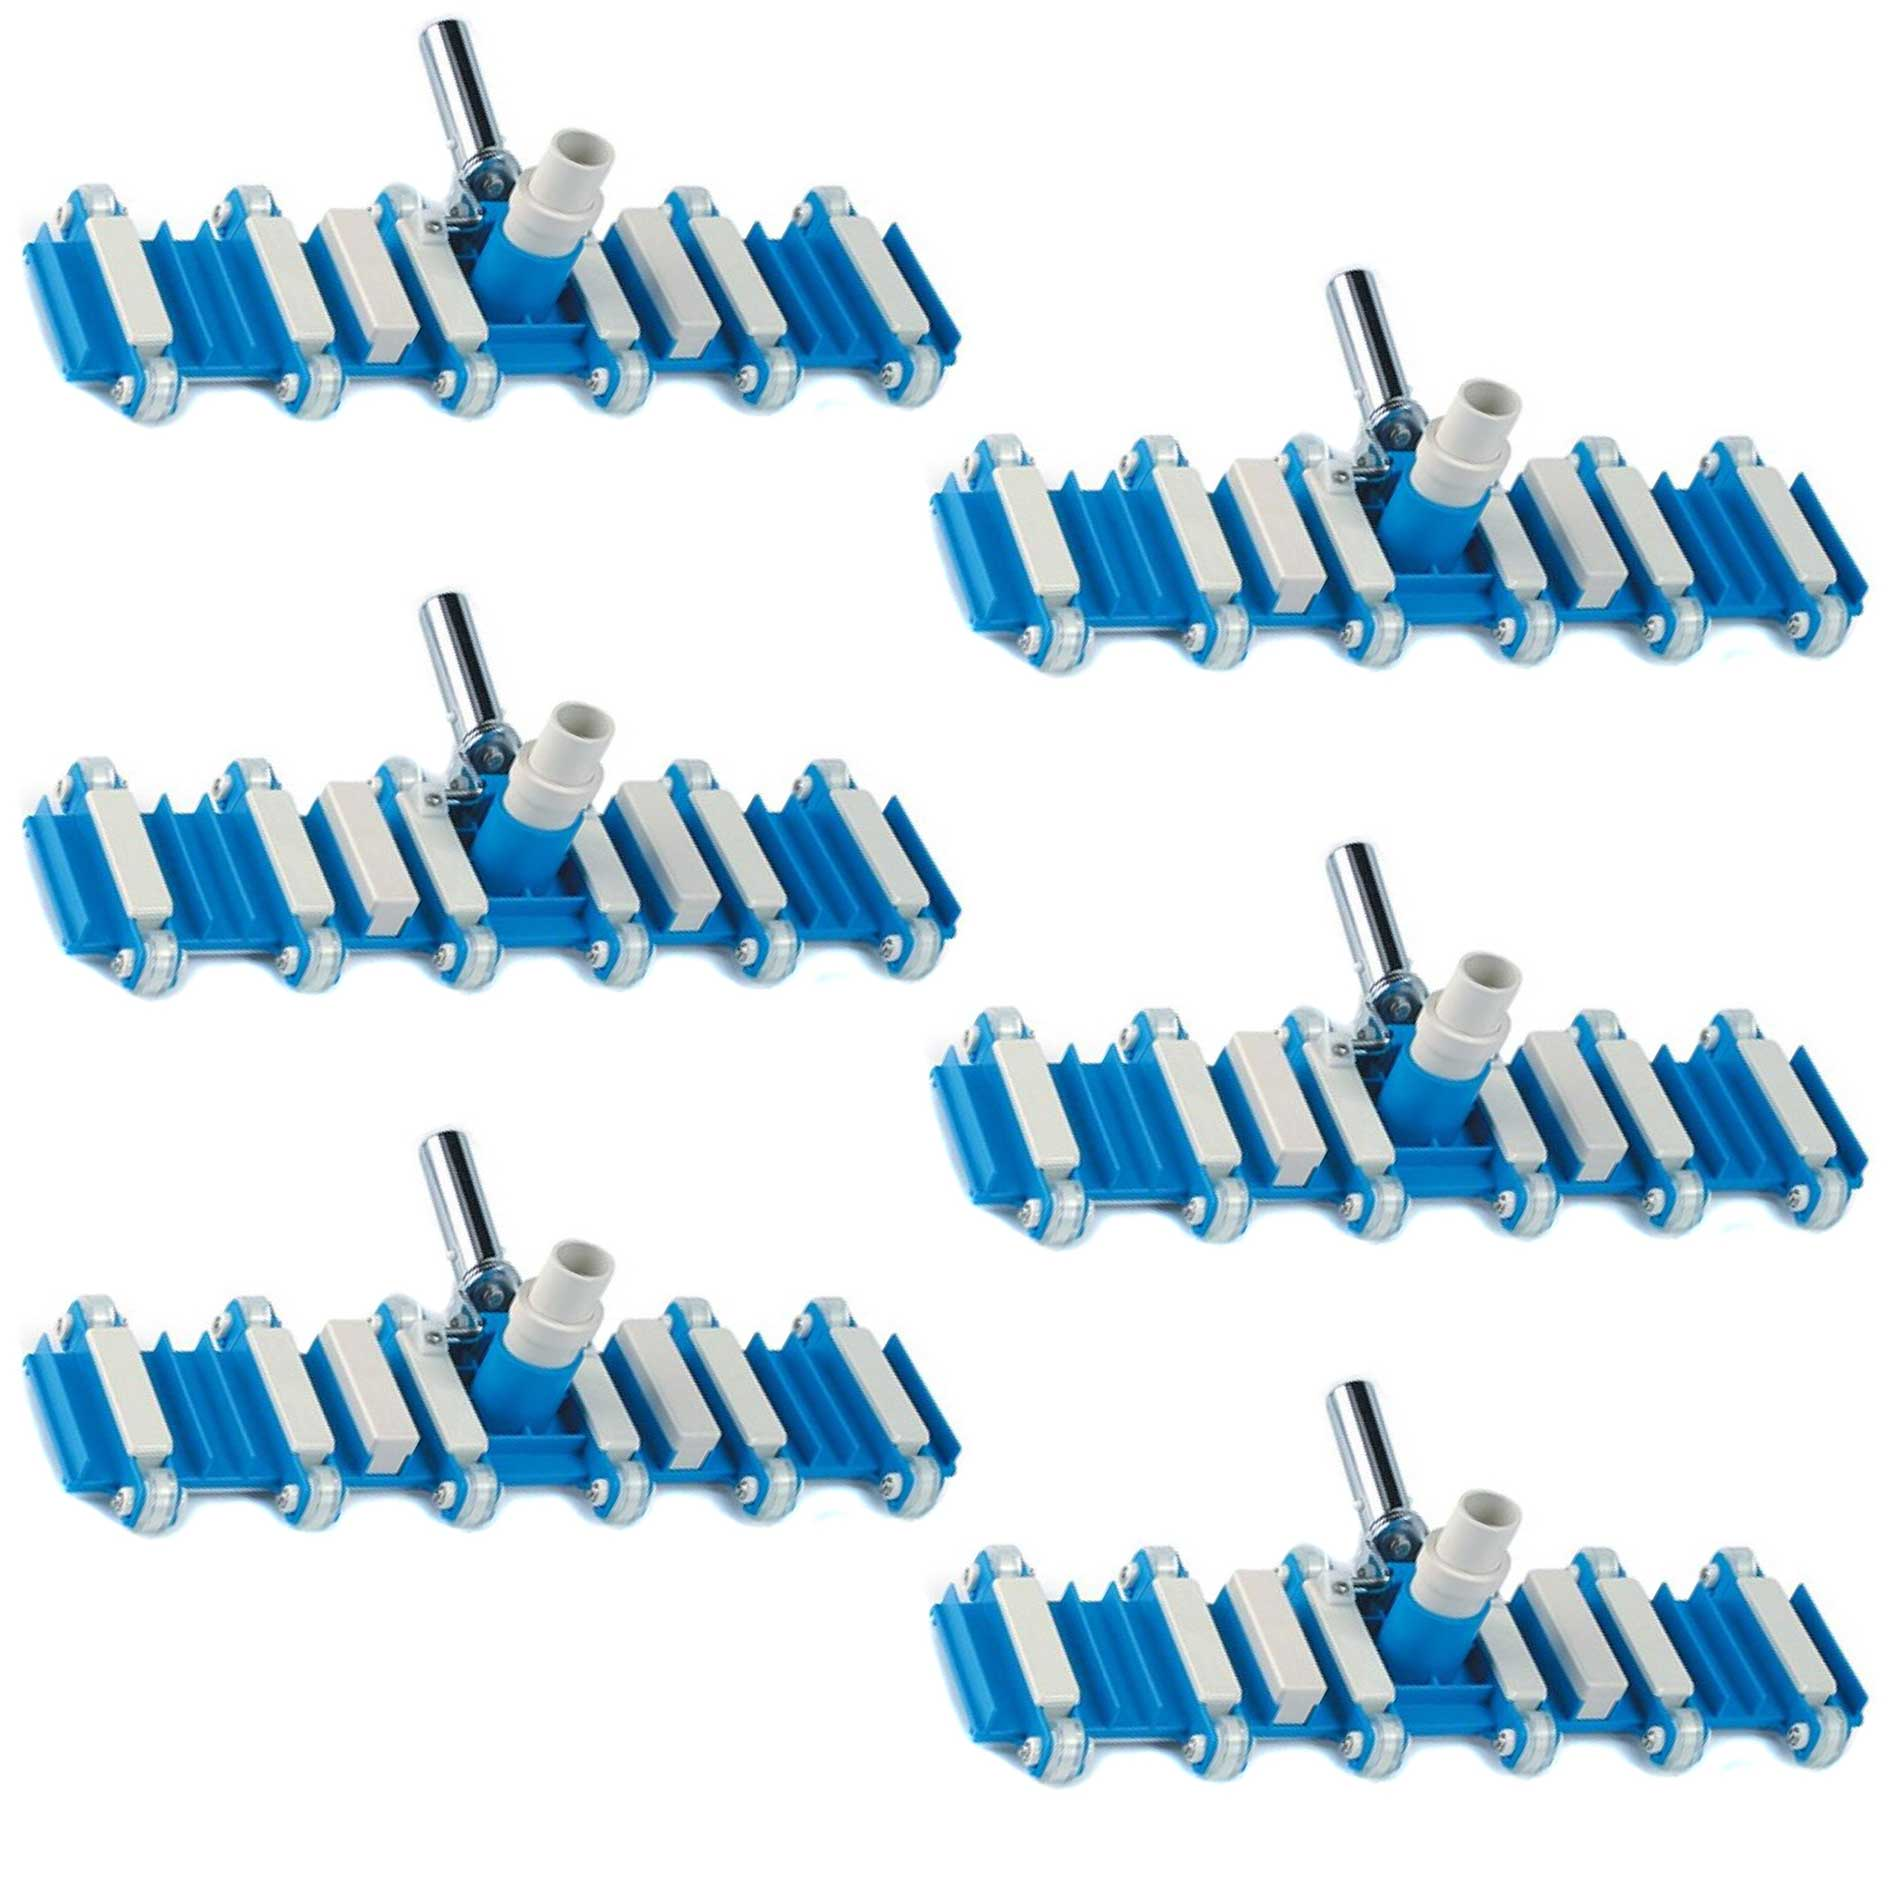 Pentair 222 Swimming Pool Pro Series Commercial Suction Vacuum Head (6 Pack)